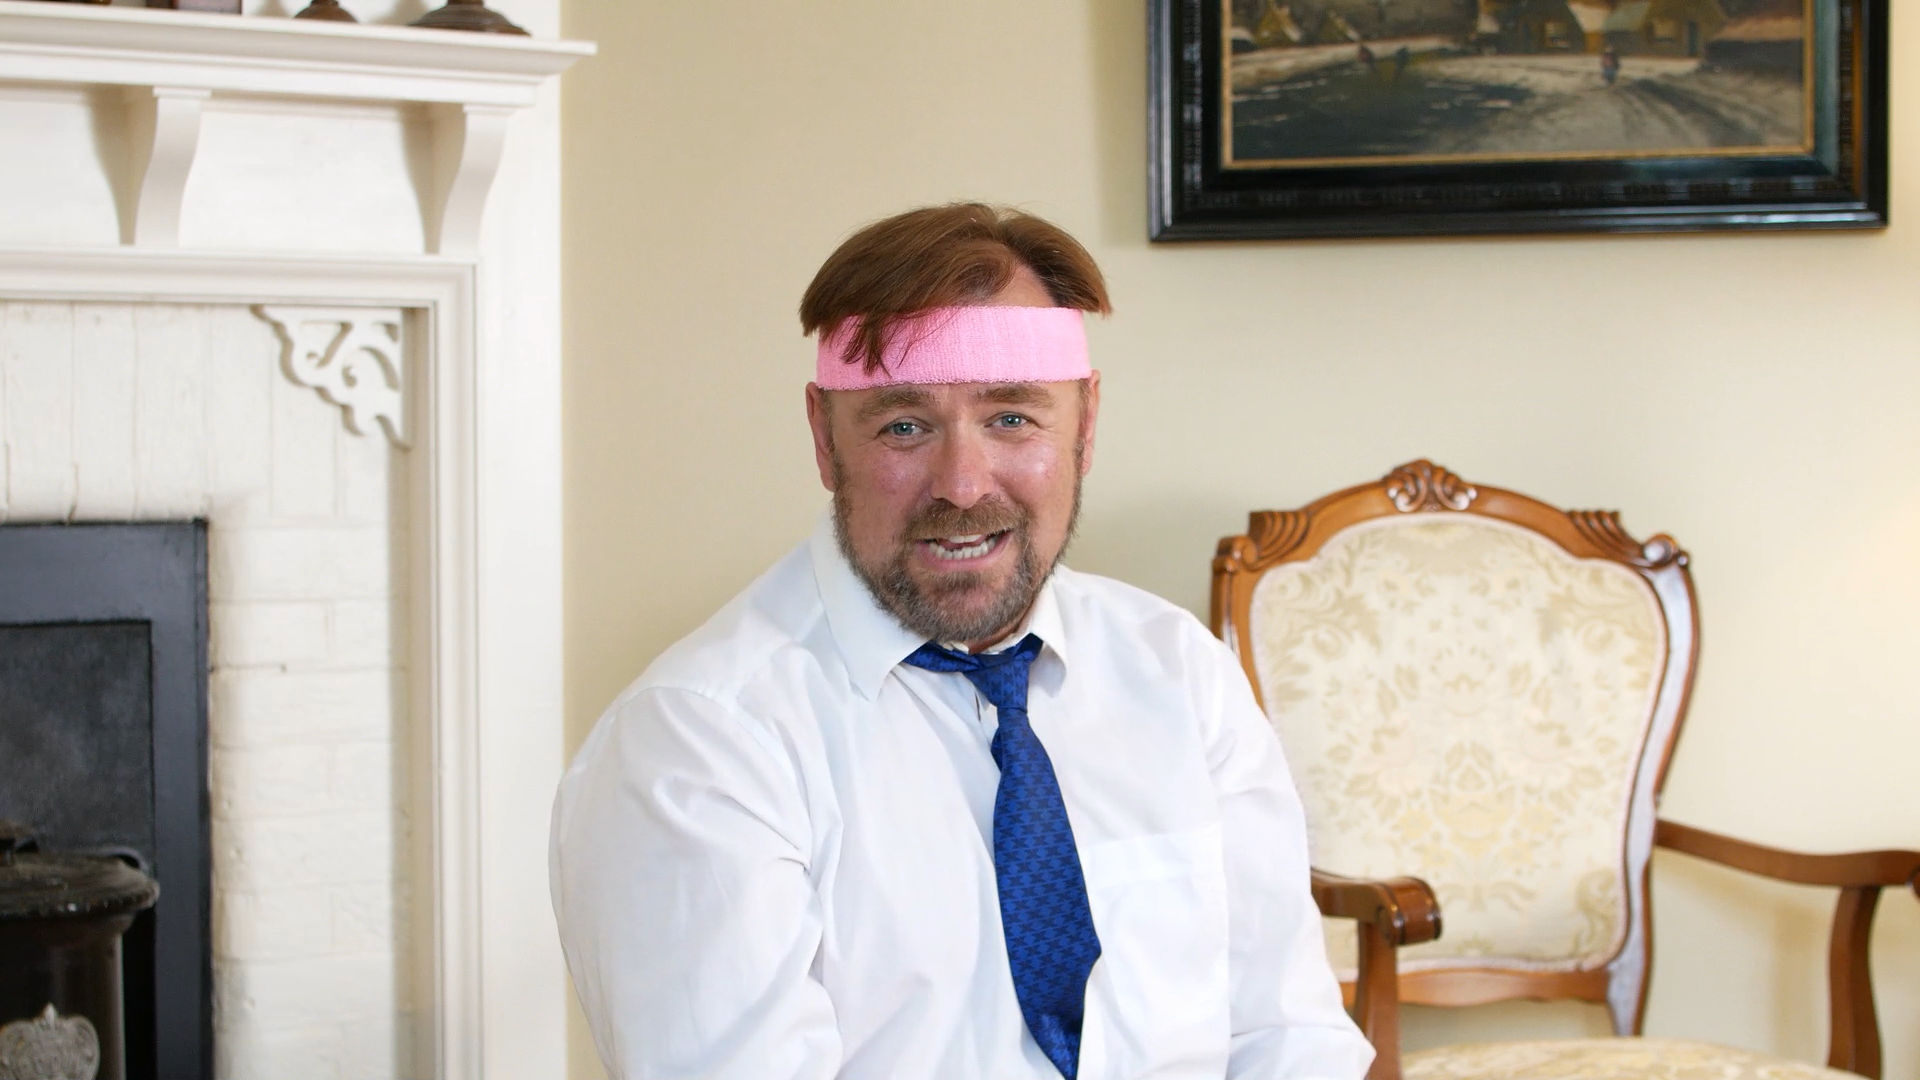 Still from short film Jargon Fitness, produced by Movement Films and Cardboard Moon Pictures showing actor Richard Stride